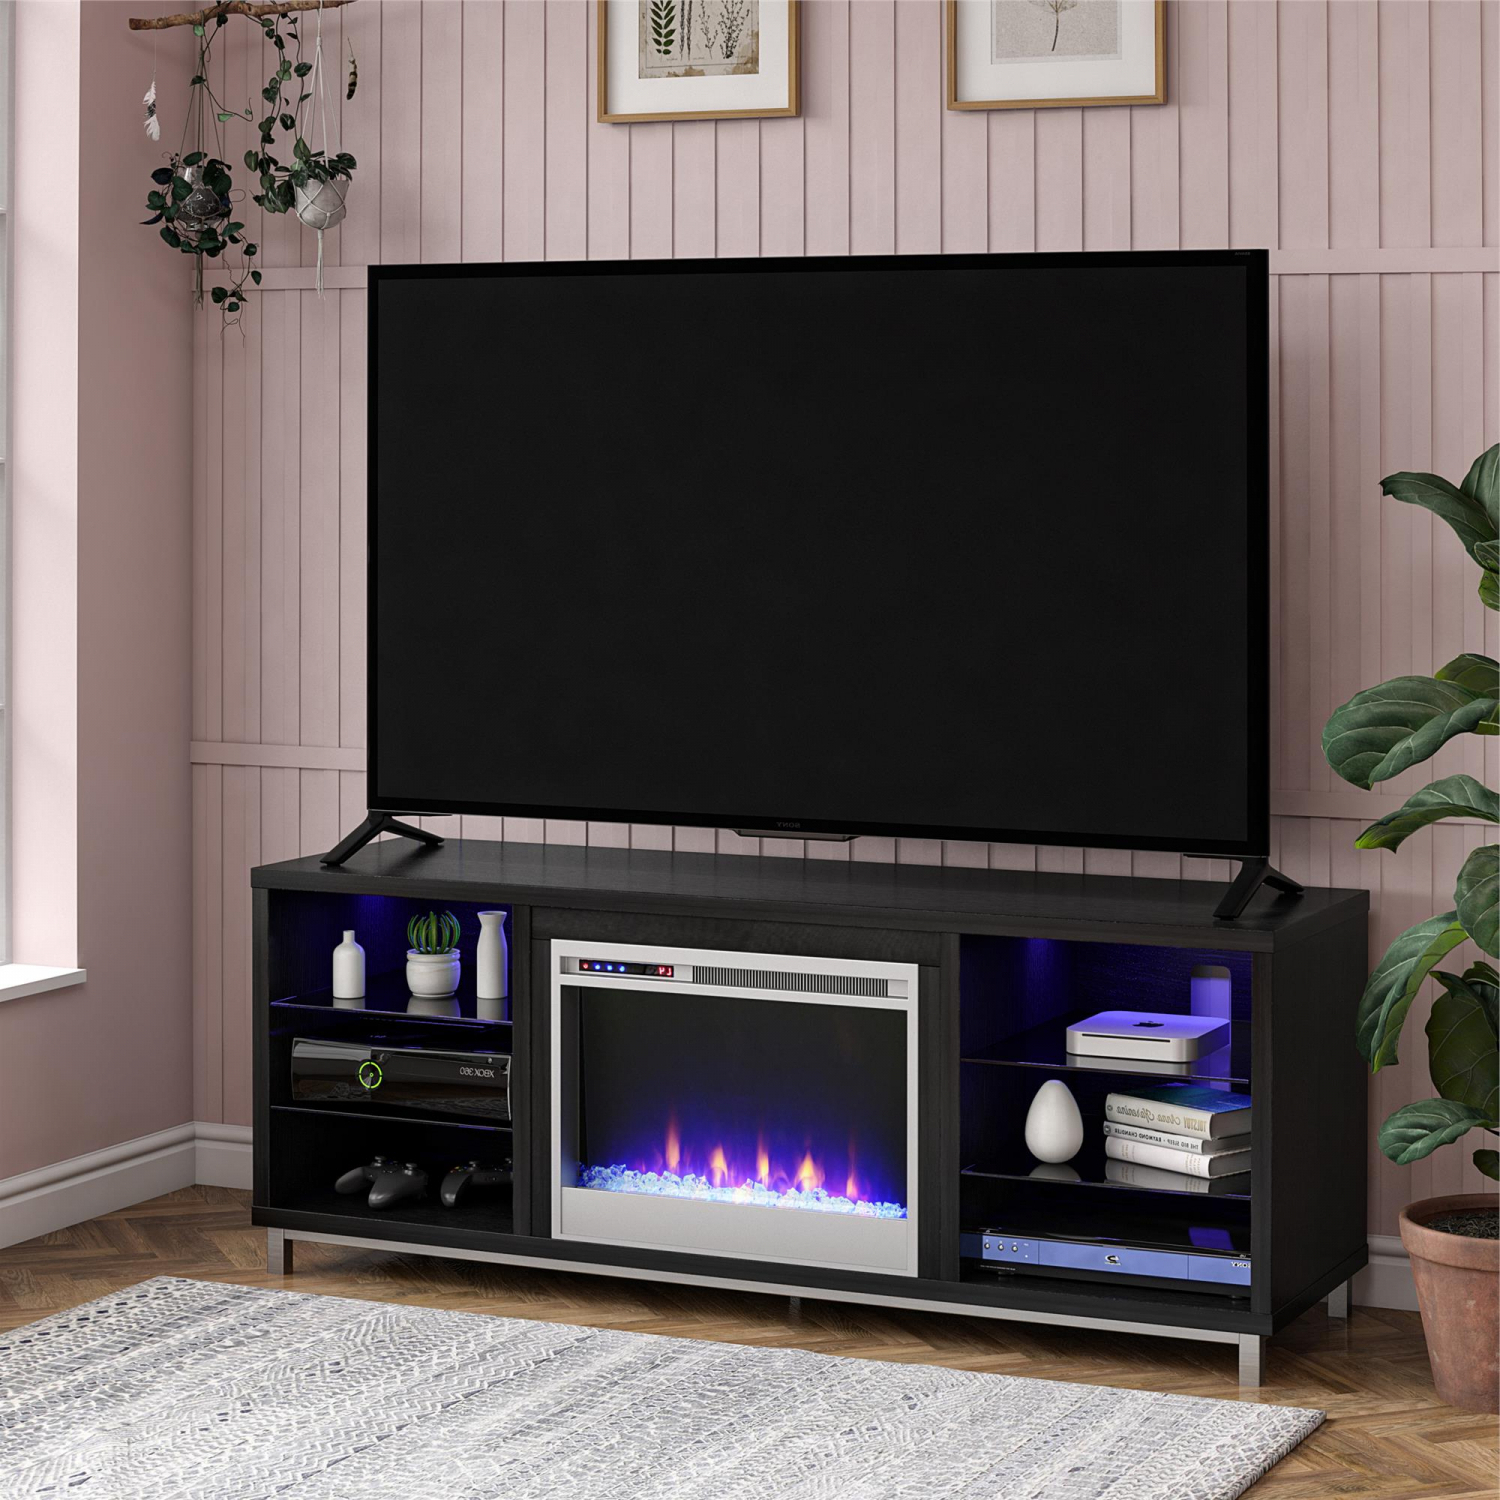 """Kinsella Tv Stands For Tvs Up To 70"""" Regarding Famous Electric Lumina Fireplace Tv Stand For Tvs Up To 70 Wide (View 12 of 25)"""